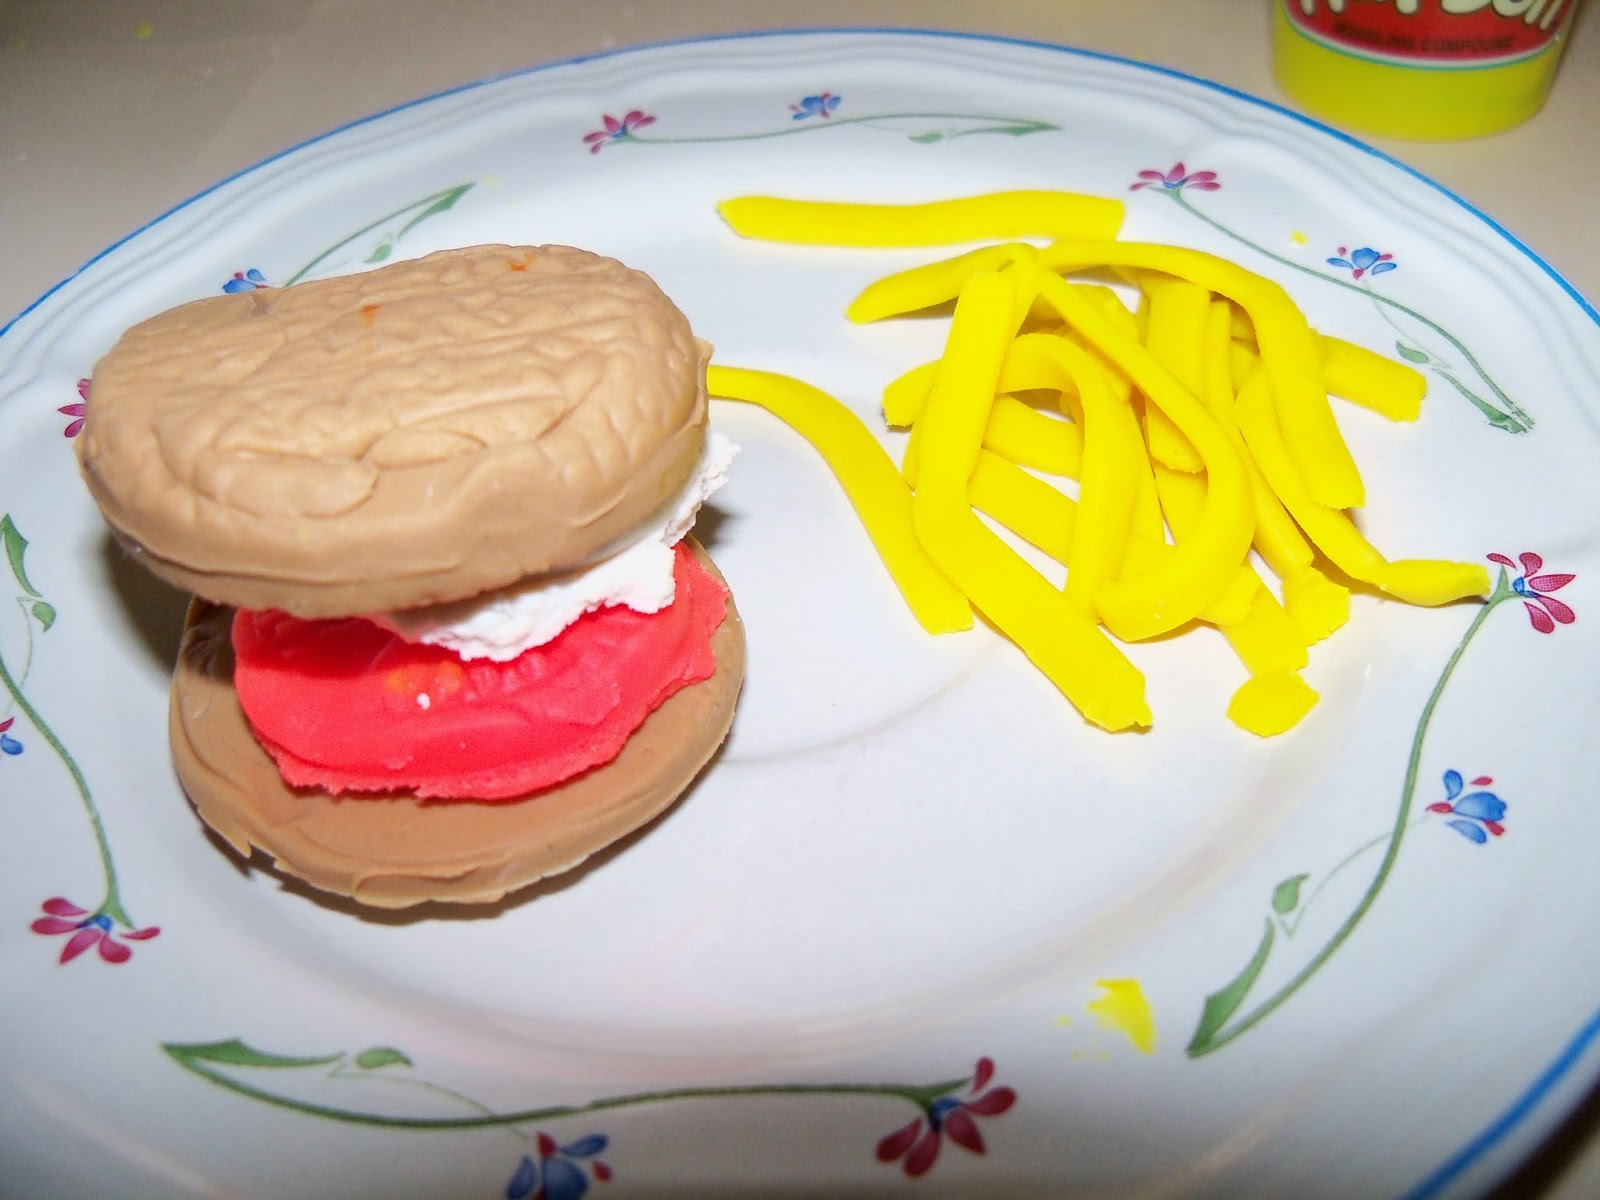 Playdoh Lunch - 115_4132.JPG